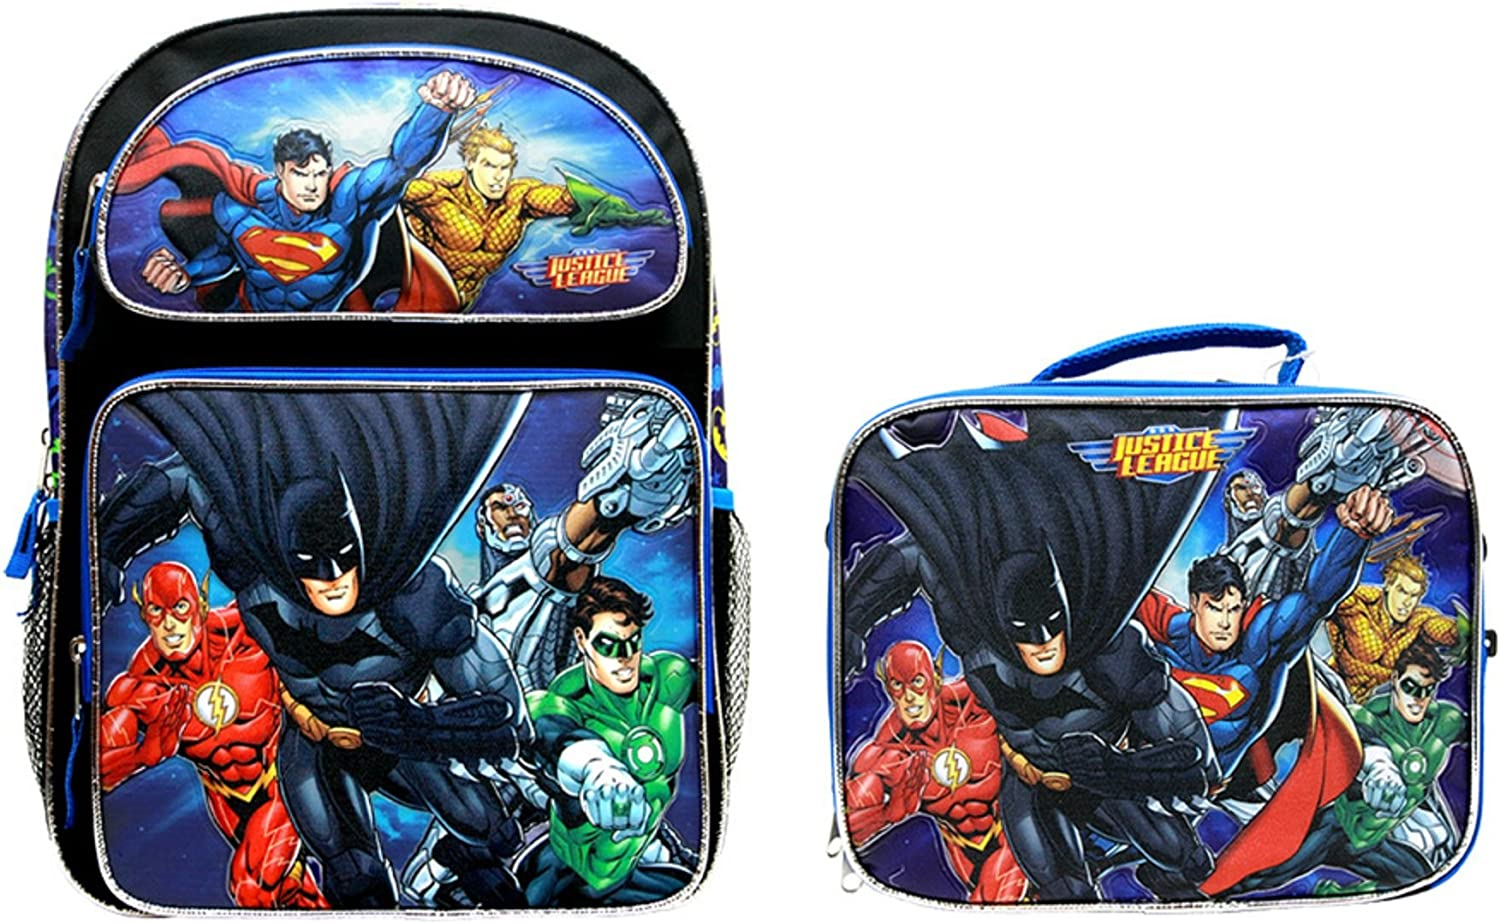 Accessory Innovations Grannys All New Justice League Batman Superman School 16 Backpack and Justice League Lunchbox Set C